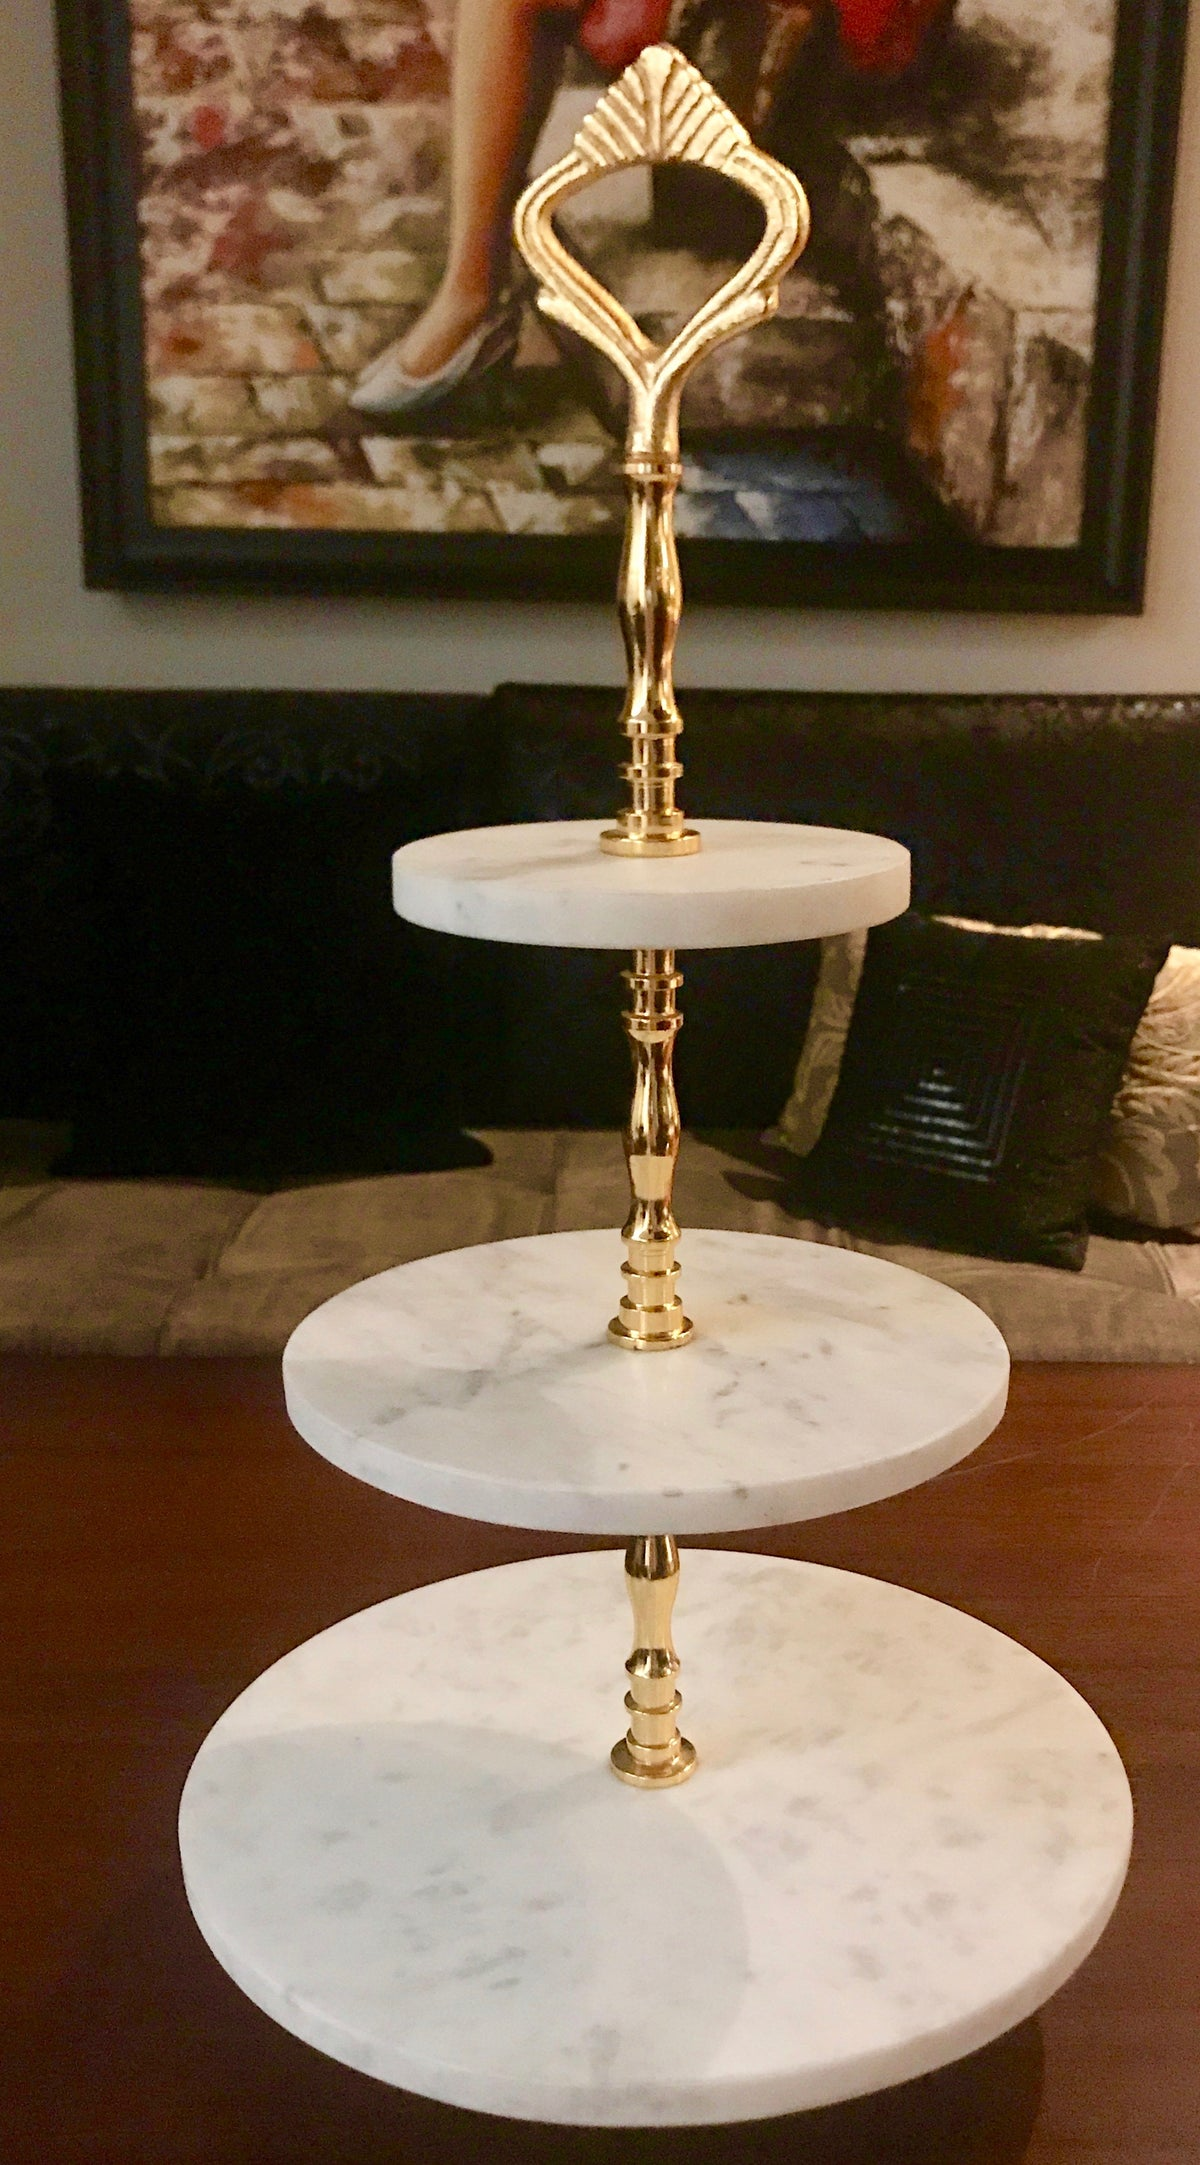 A Marble cake stand with a brass stem with 24ct polish to support the structure.